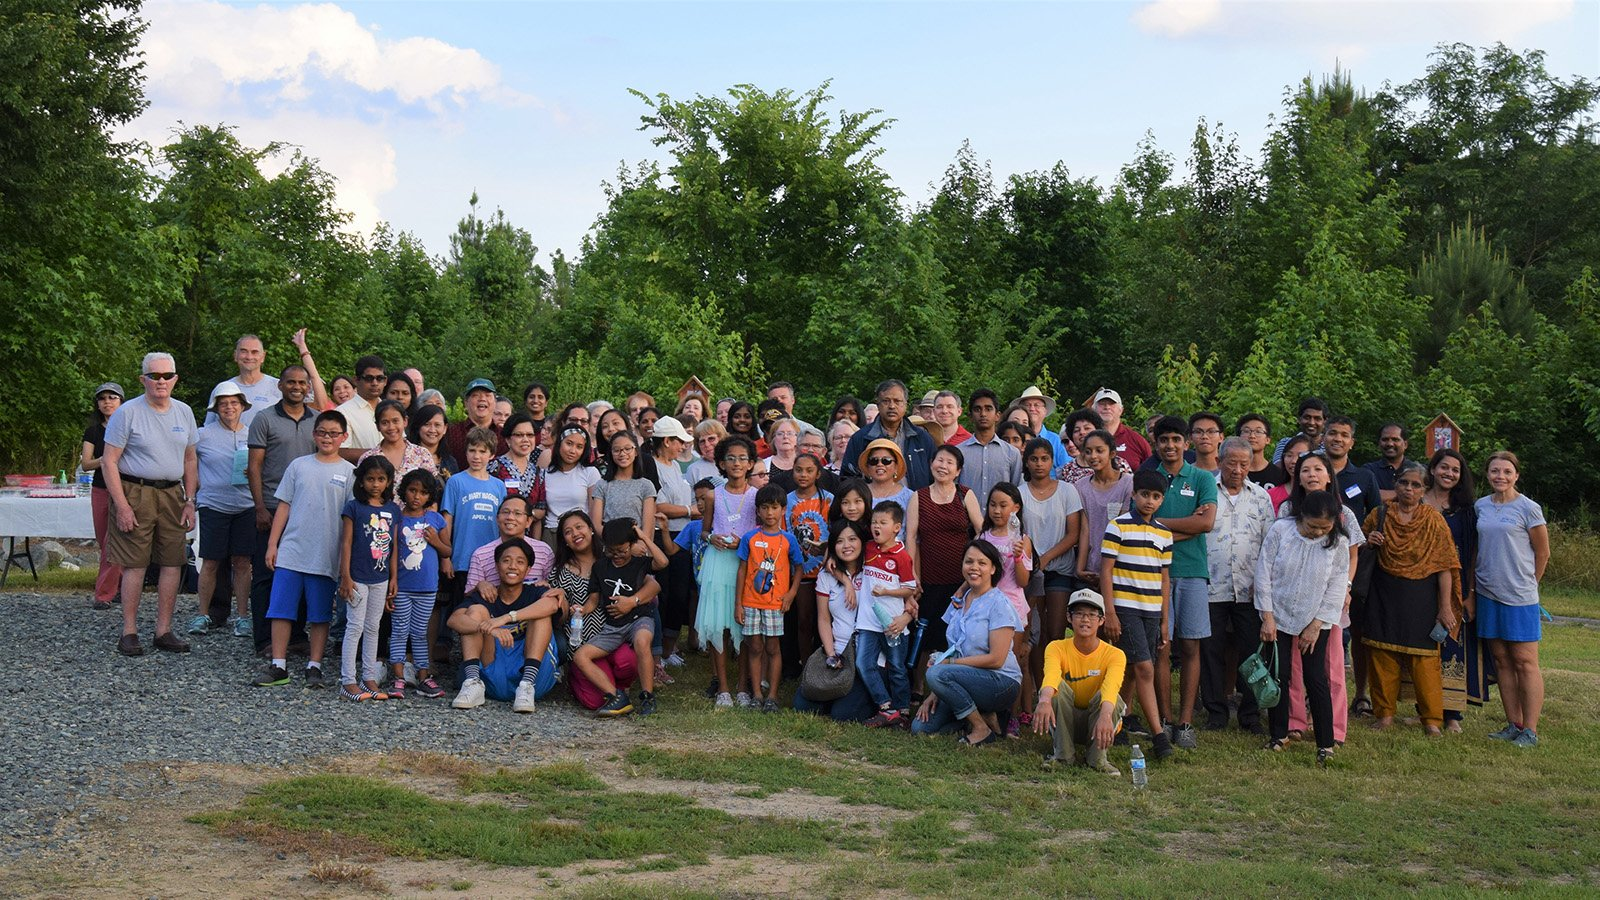 Mother Teresa Catholic Church members pose for a group photo during a Multicultural Rosary event in 2018 at the future church site in Cary, North Carolina. Attendees prayed the decades of the rosary in different languages, reflecting their different backgrounds. Photo courtesy of Mother Teresa Catholic Church